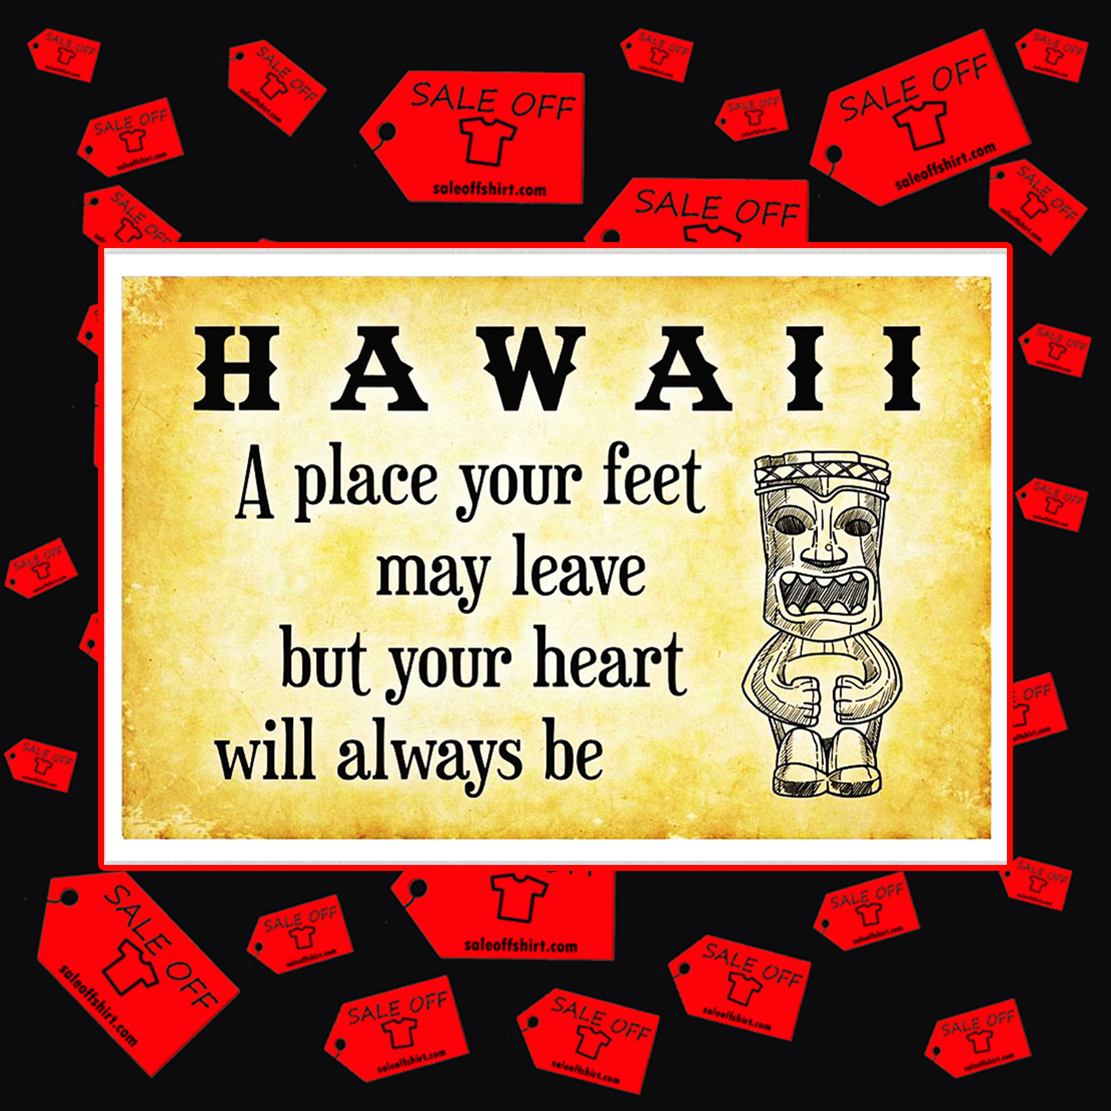 Hawaii a place your feet may leave but your heart will always be poster 24x16